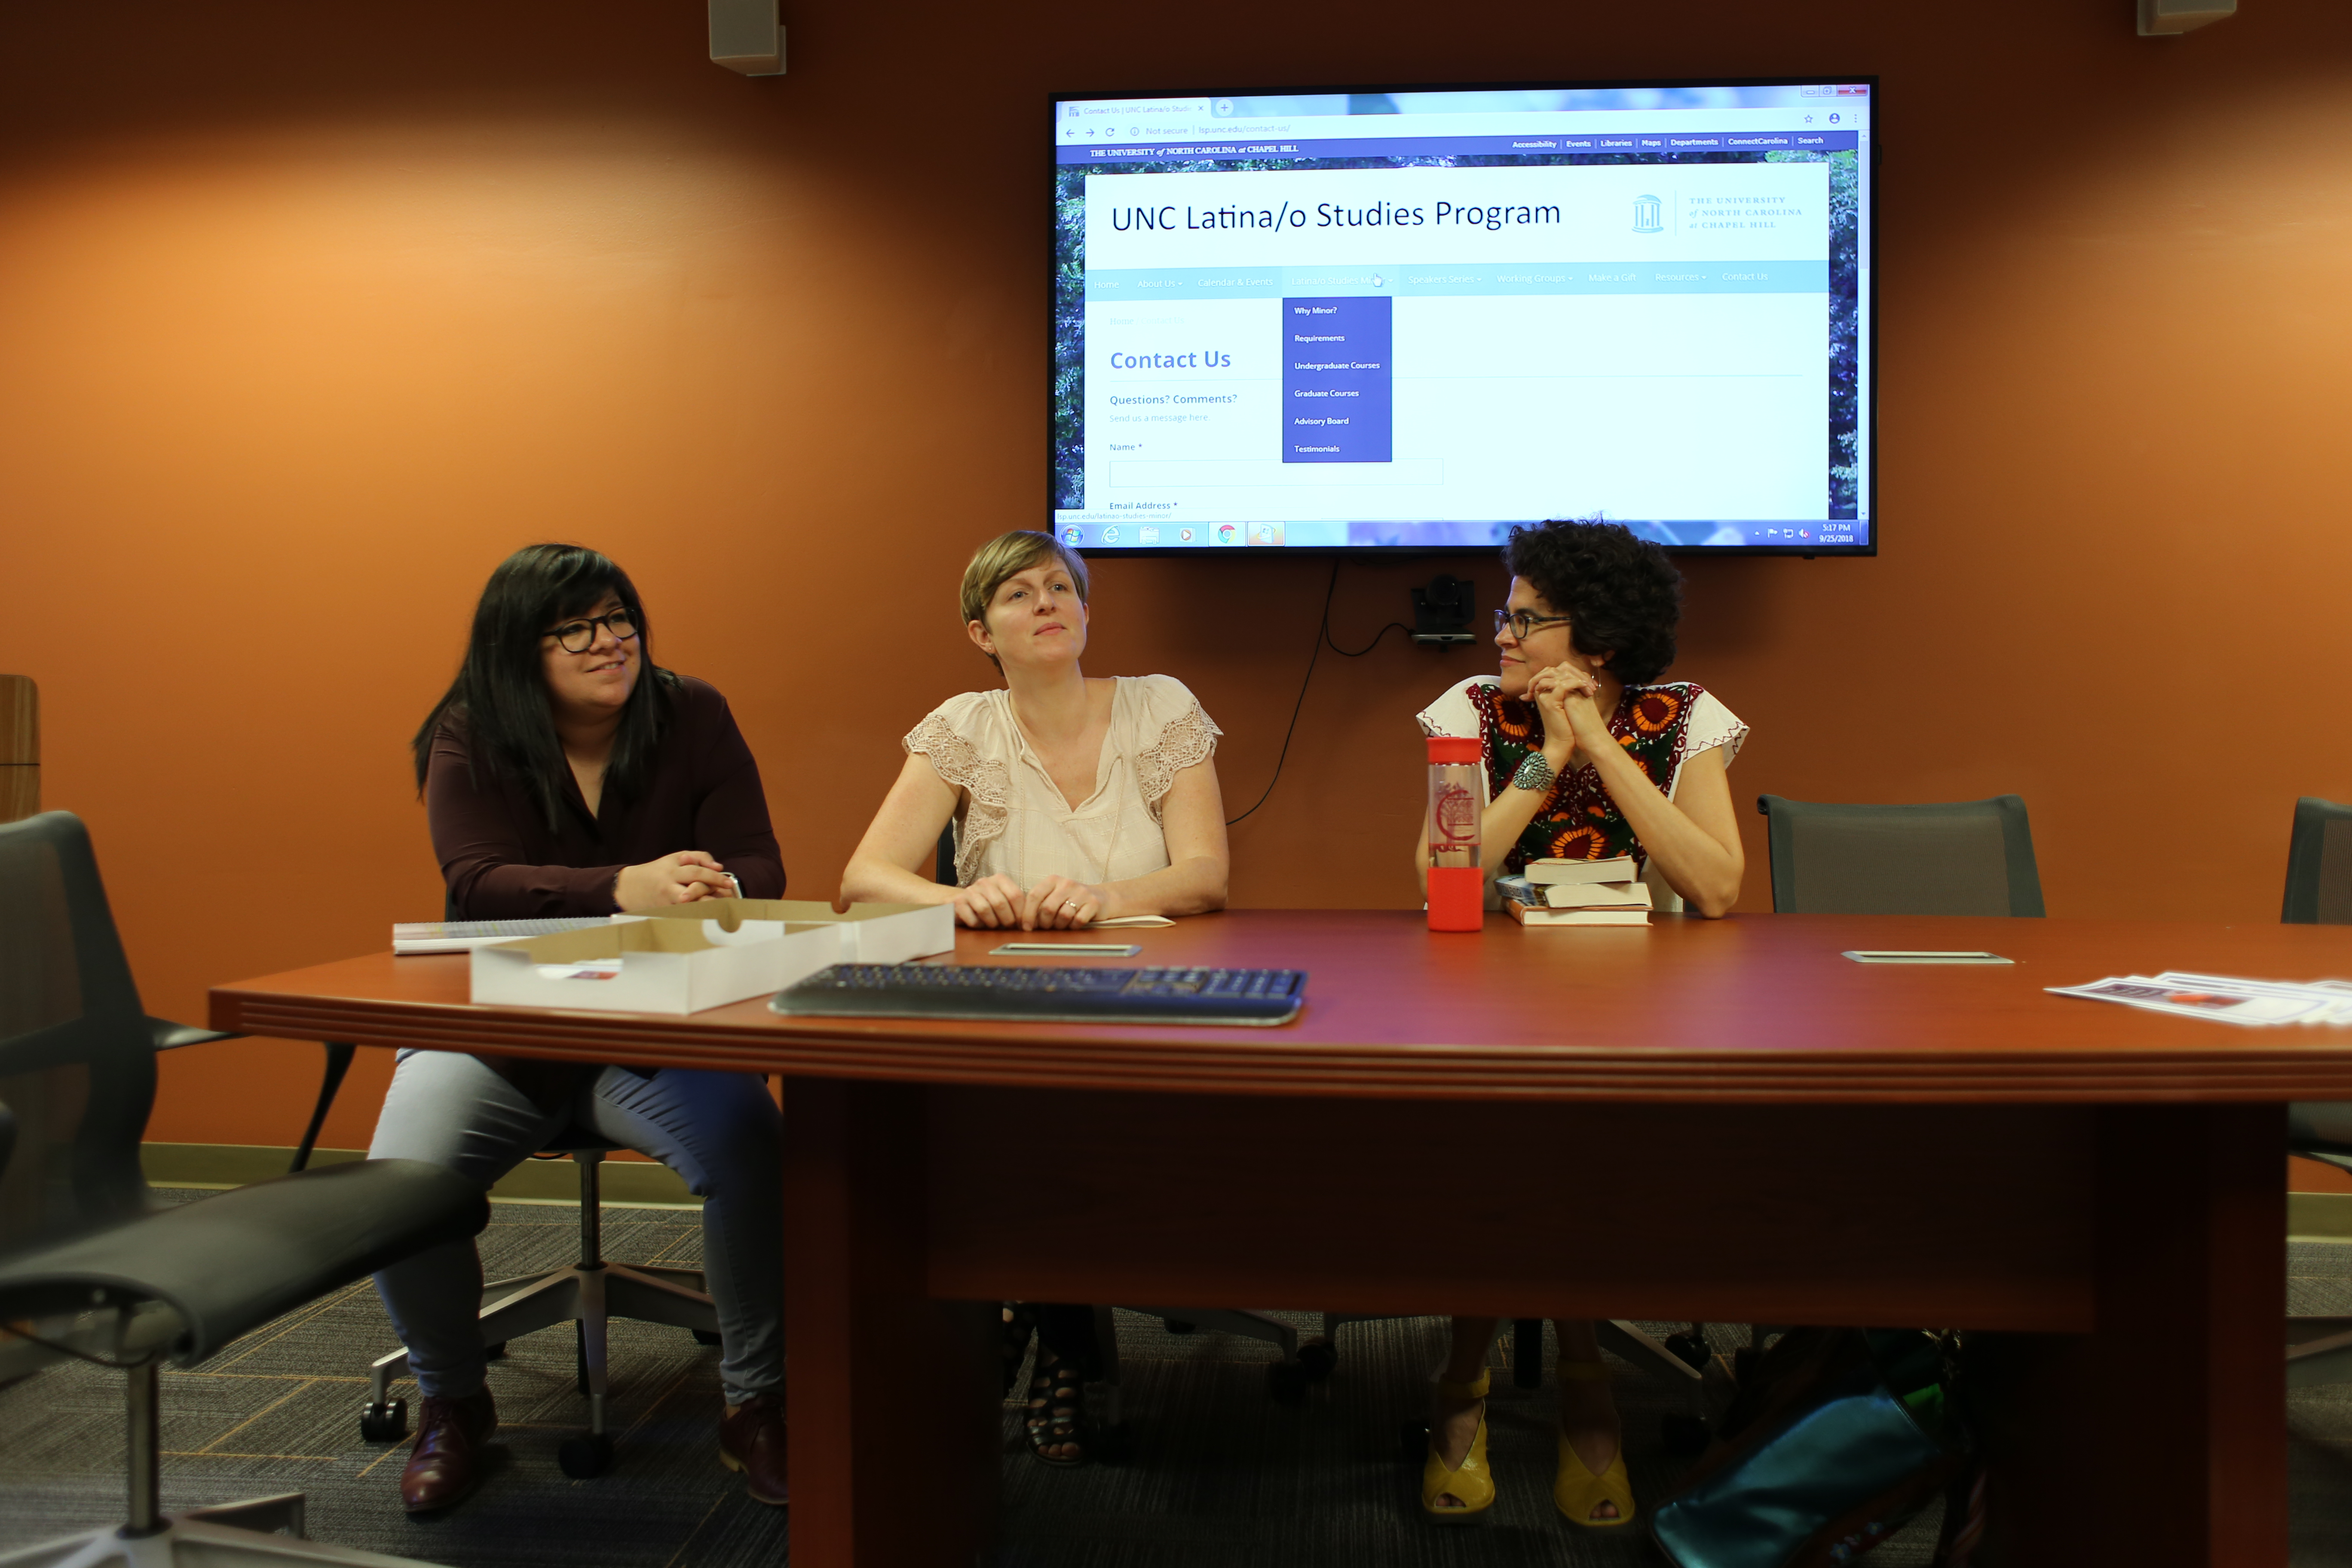 Scholars Alejandra Márquez, Angela Stuesse, and Stephanie Elizondo Griest sitting at a conference table before a projected image of the Latina/o Studies Program website.